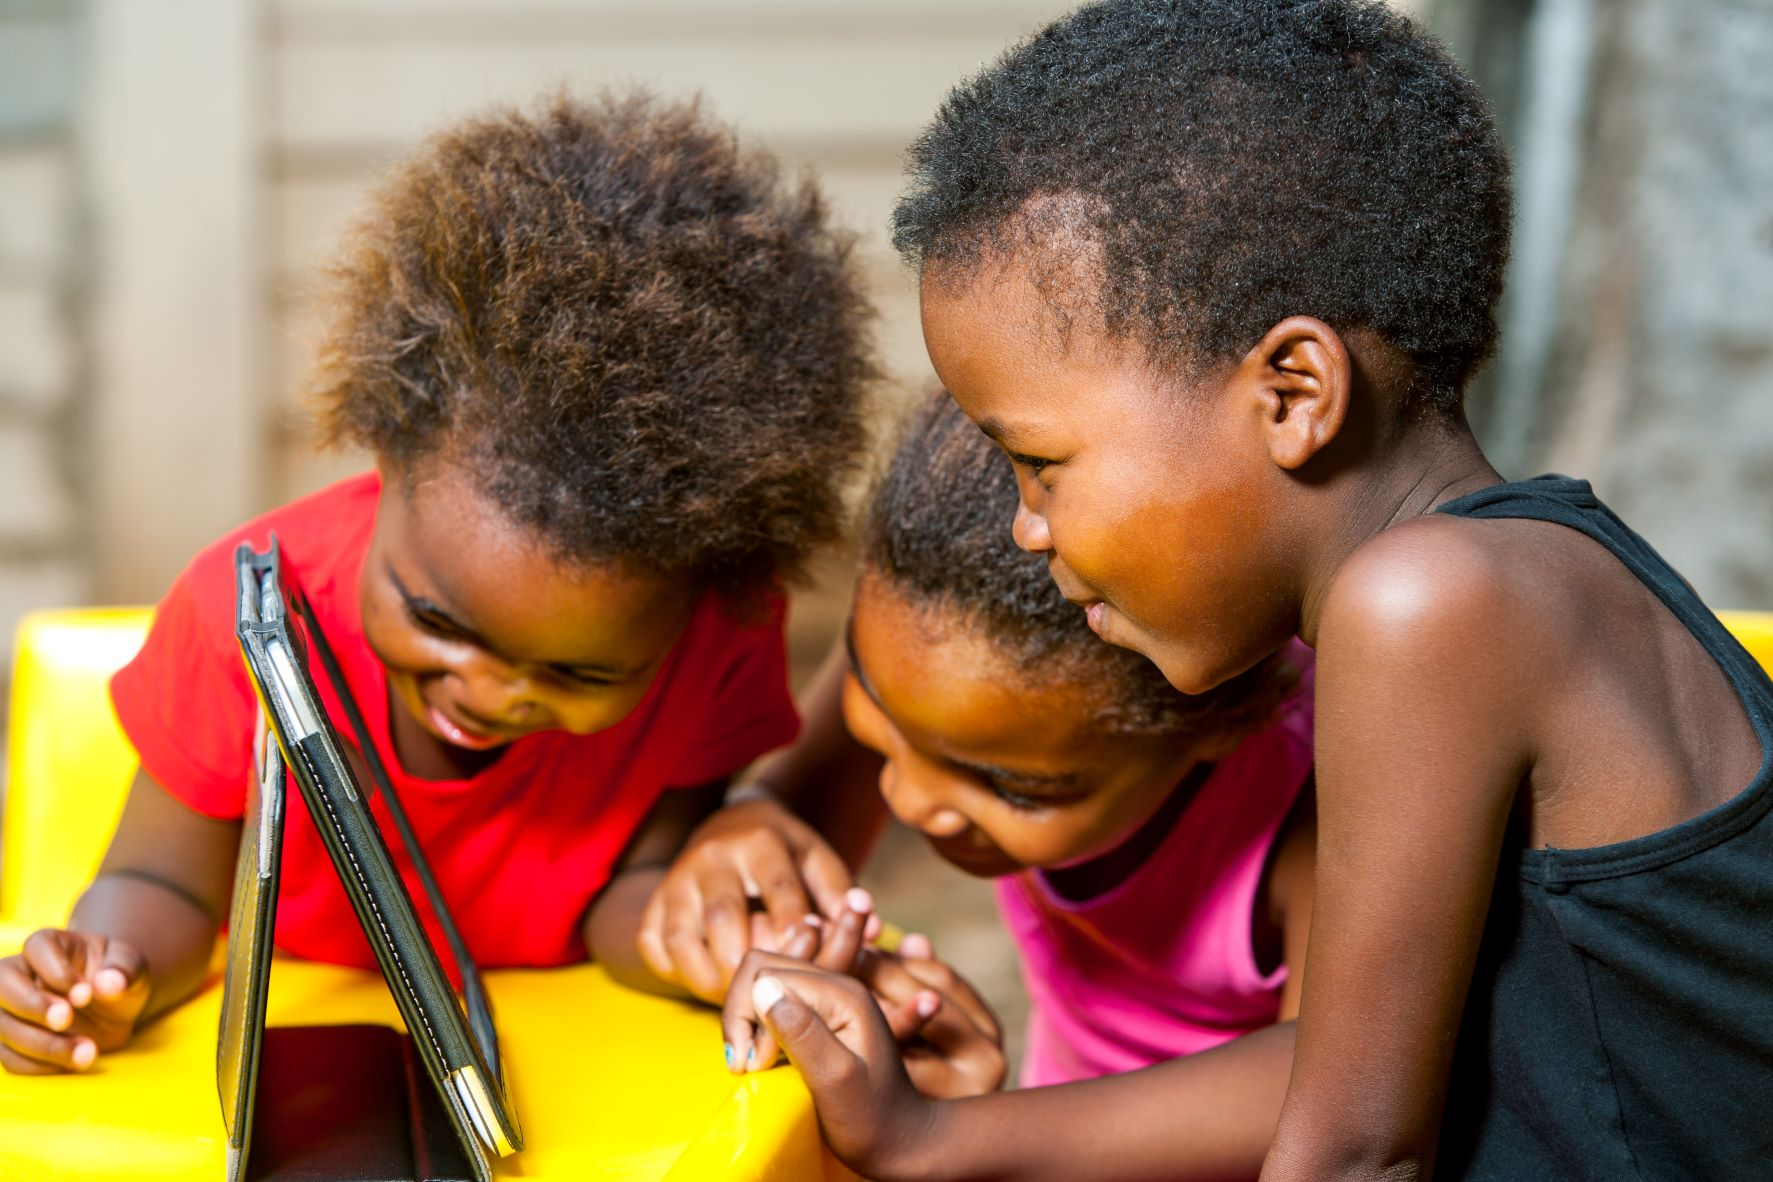 Image of children using the internet on a tablet. USTDA is funding a feasibility study to expand affordable internet access across rural Southern Africa.